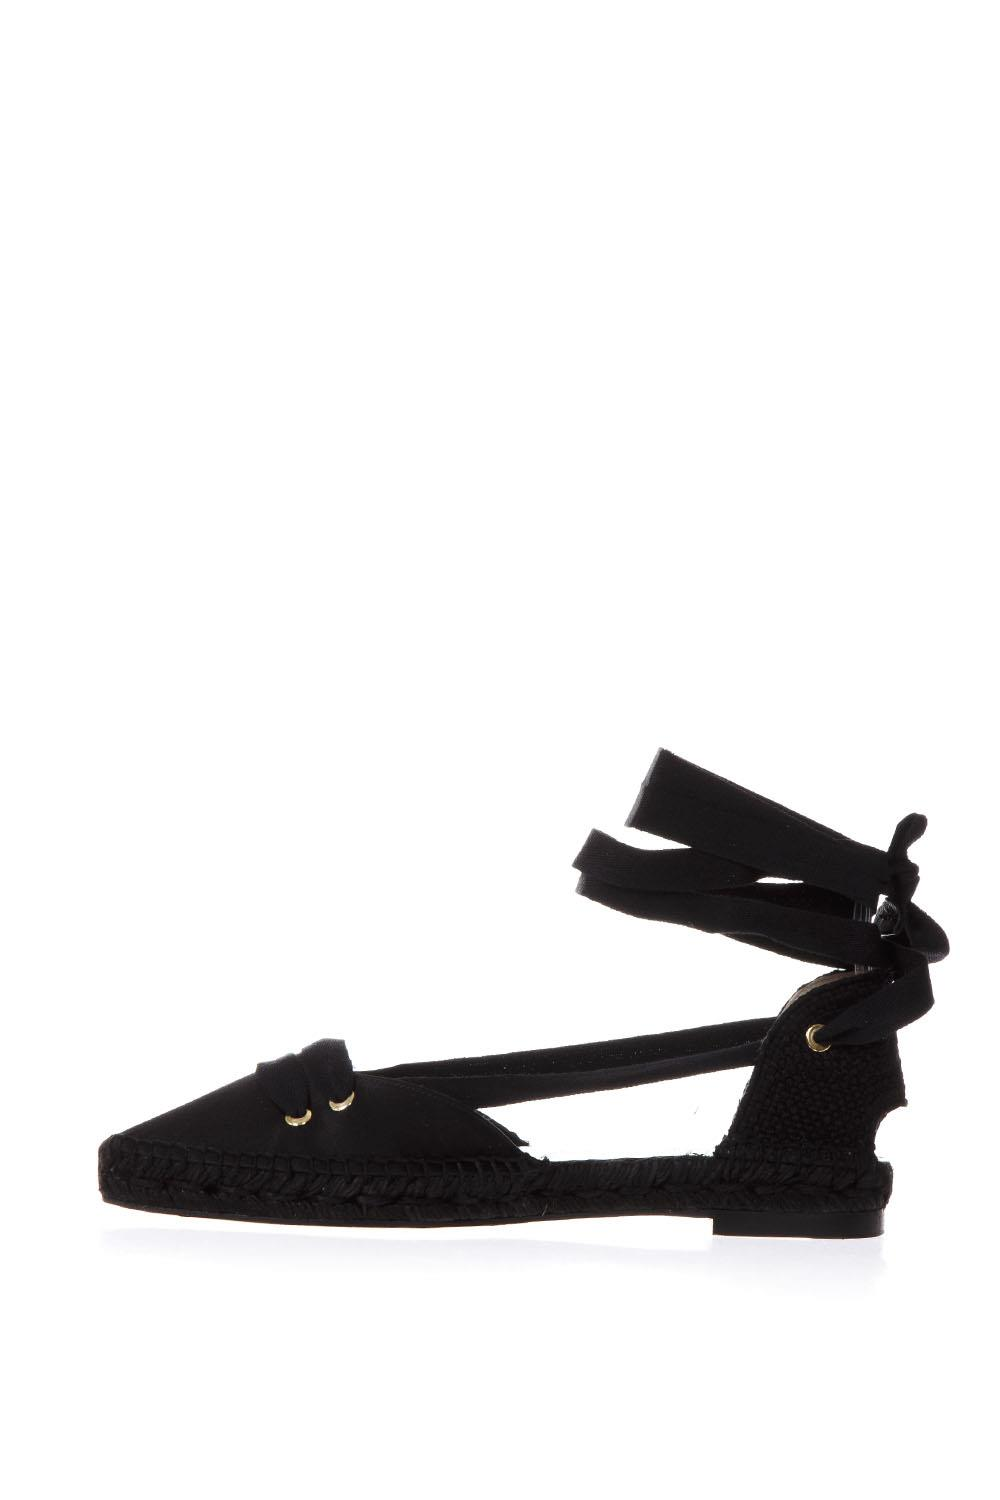 641b071effb5 BLACK SATIN AND JUTA ESPADRILLES SS18 - CASTANER BY MANOLO BLAHNIK ...